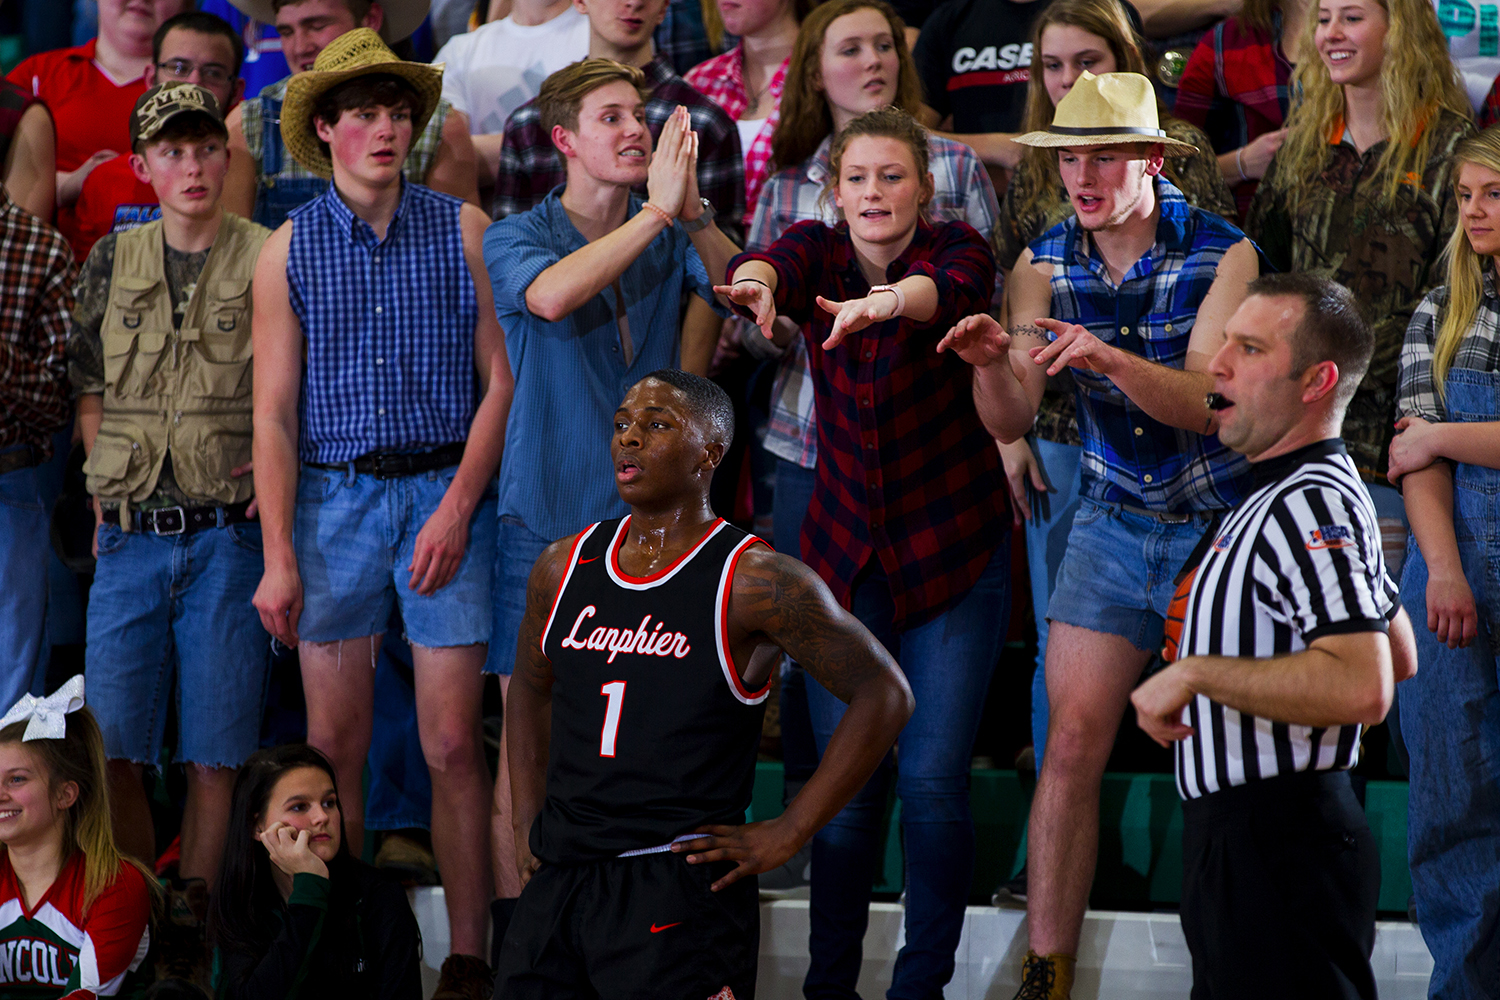 Lincoln fans antagonize Lanphier's Yaakema Rose as he prepares to inbounds the ball at Lincoln High School Friday, February 10, 2017. [Ted Schurter/The State Journal-Register]